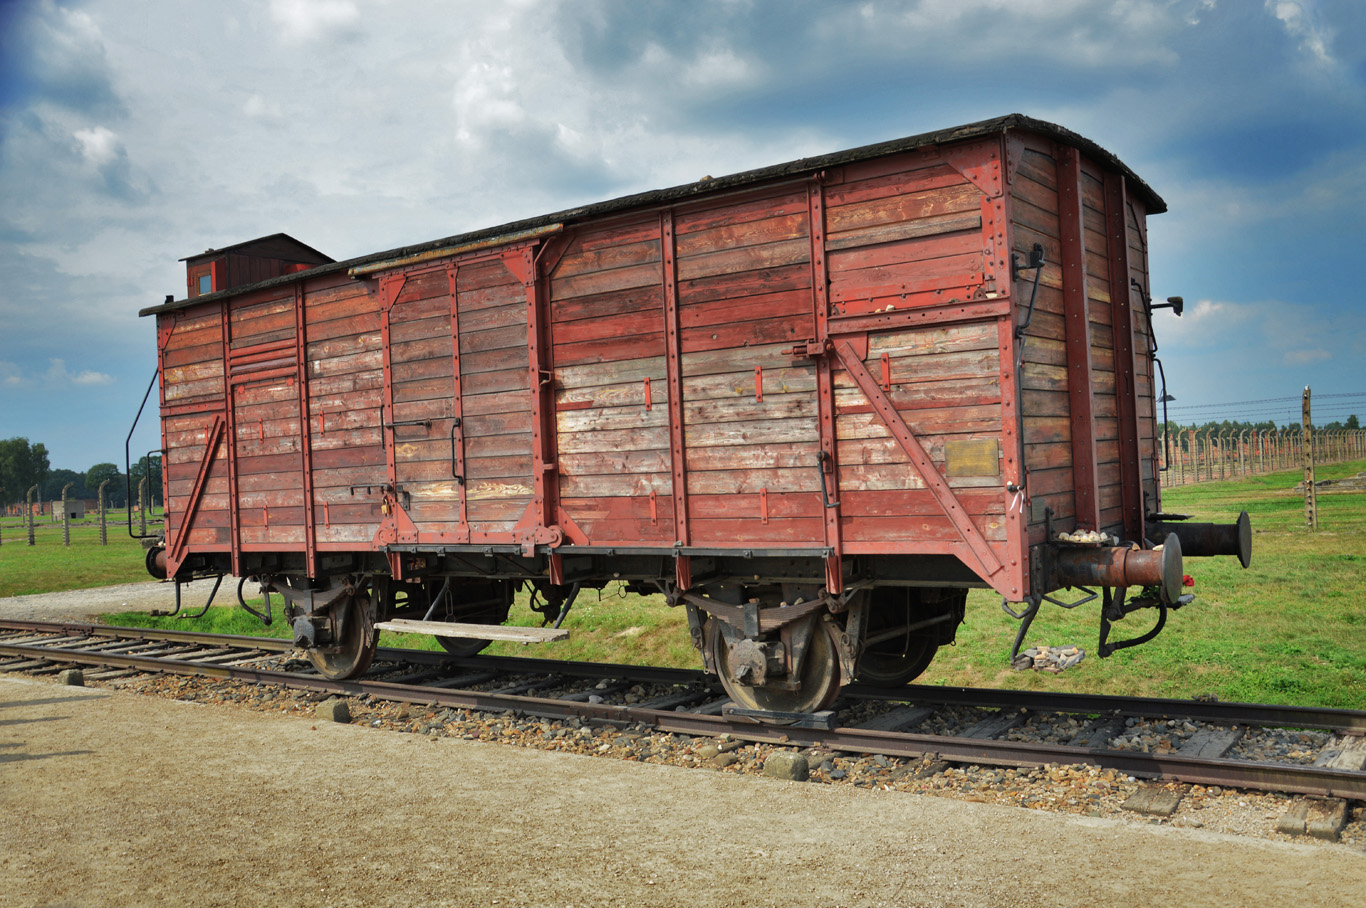 One of the railway cars used for transporting prisoners